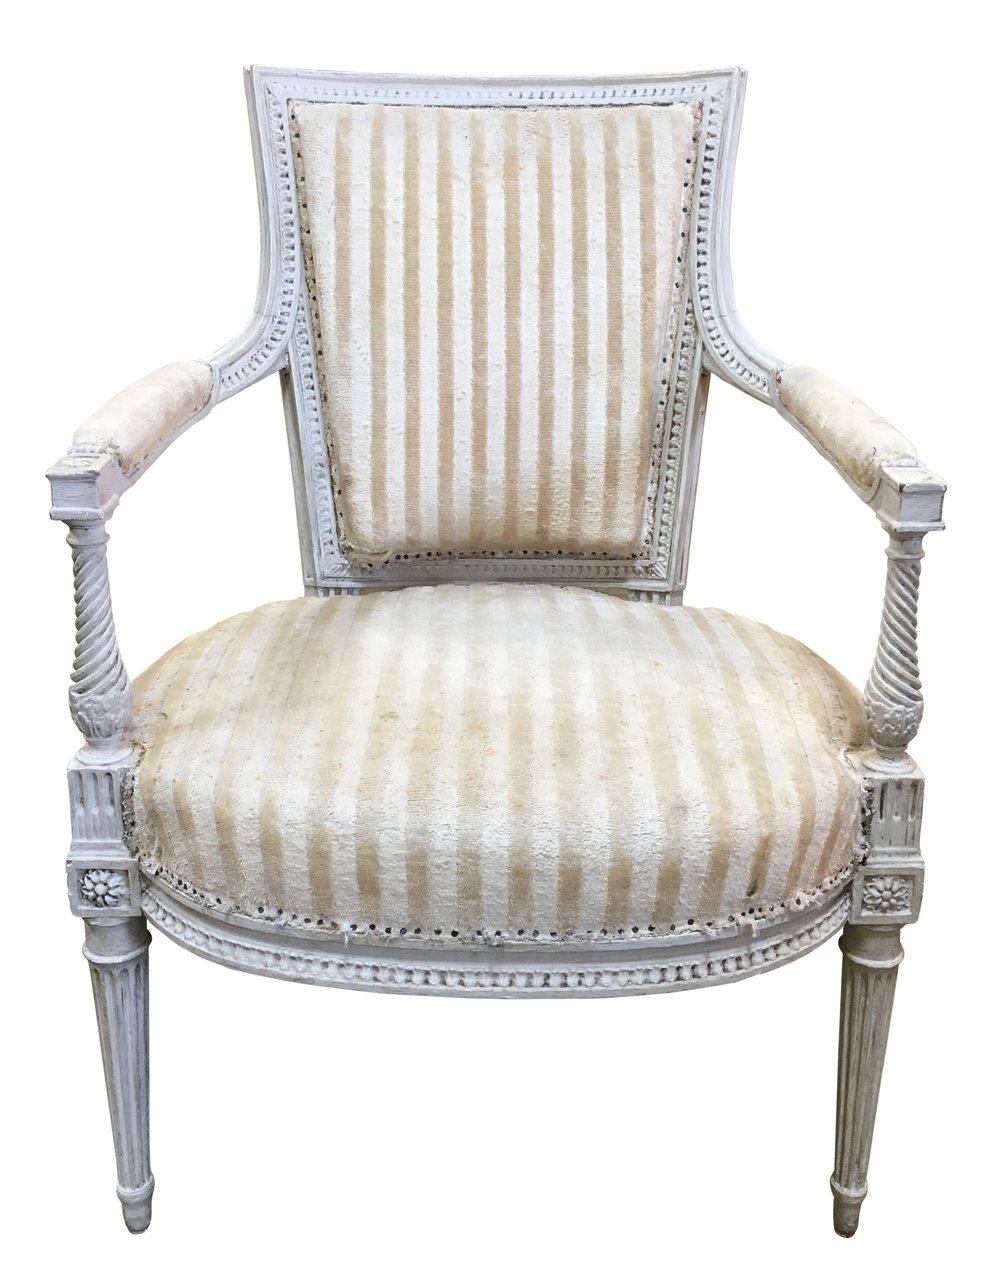 Louis XVI Armchairs before reupholstery | Revitaliste